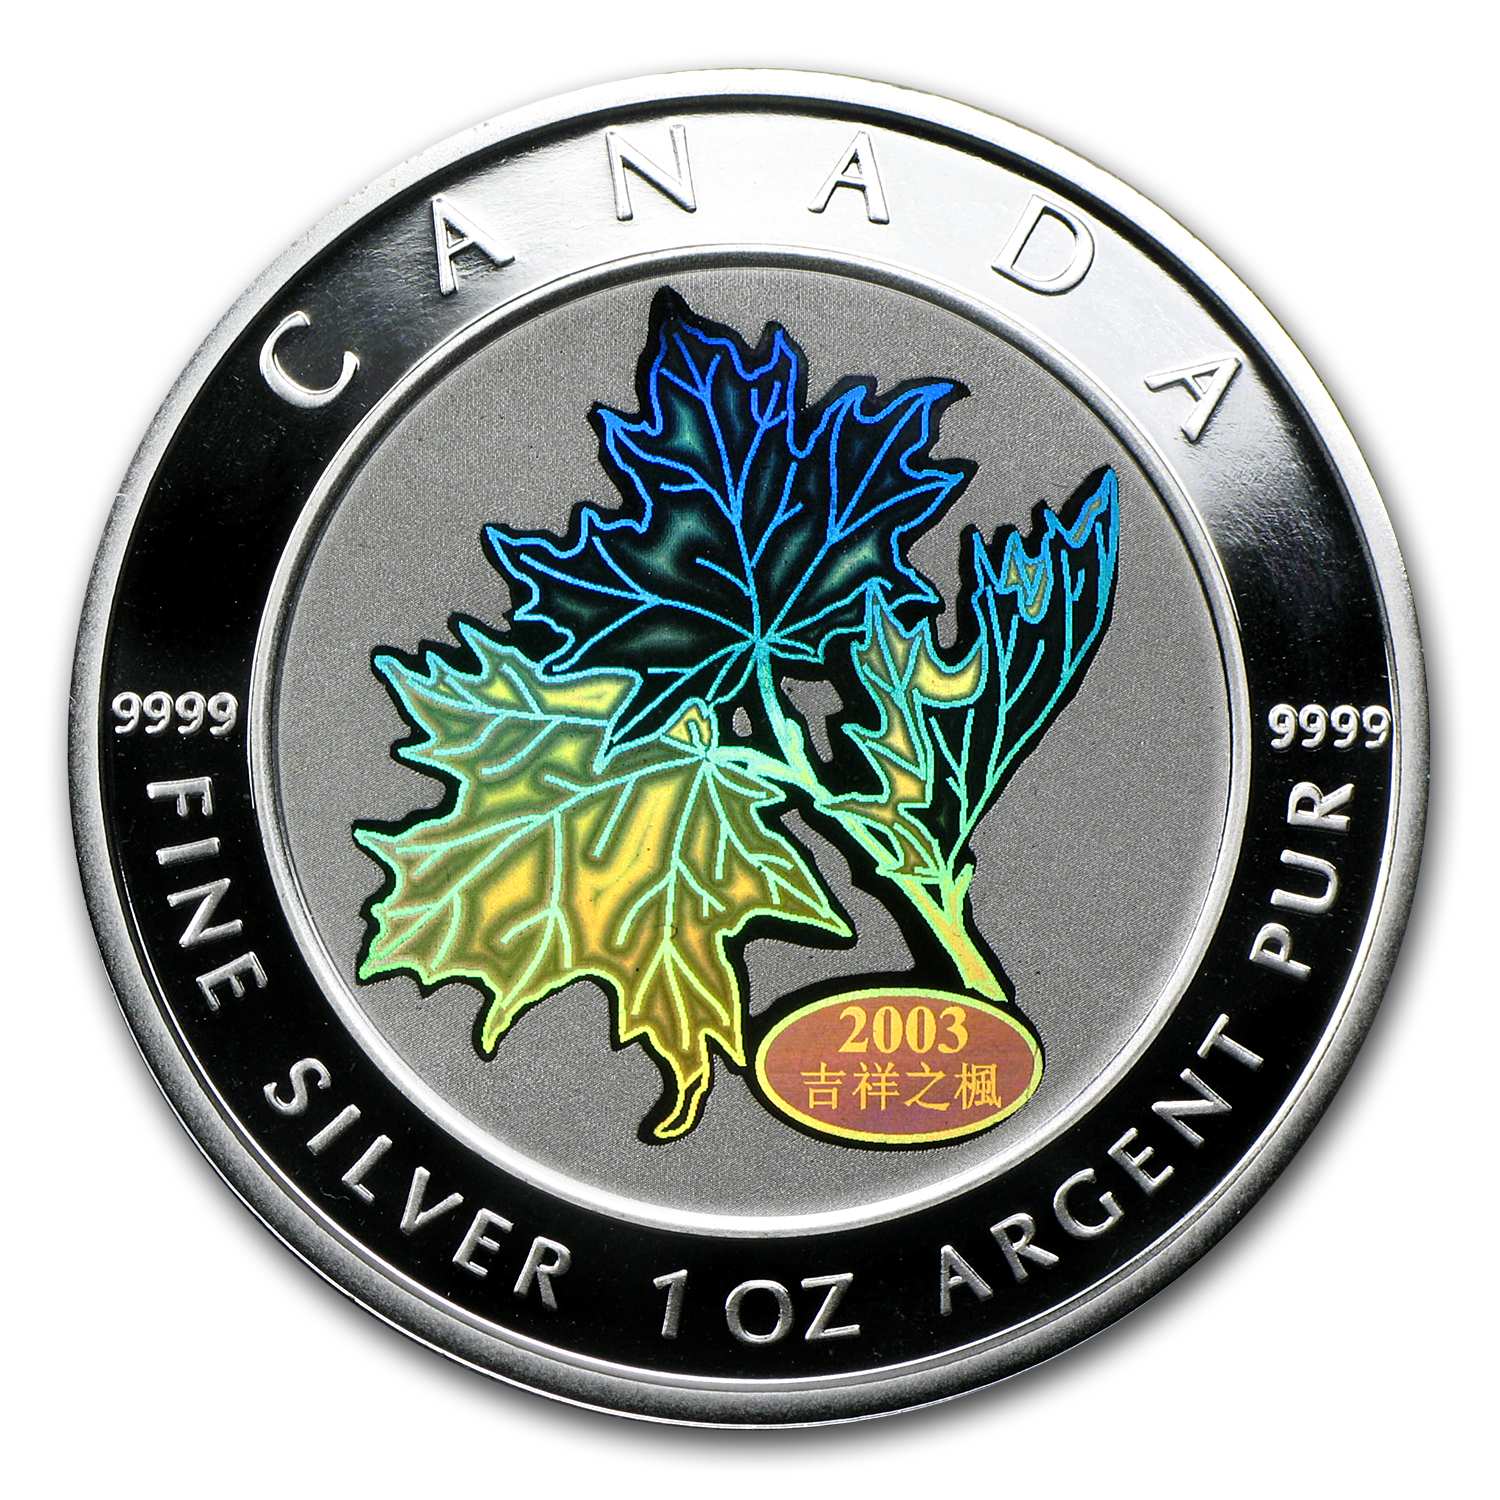 2003 Canada 1 oz Silver Maple Leaf (Good Fortune Hologram)